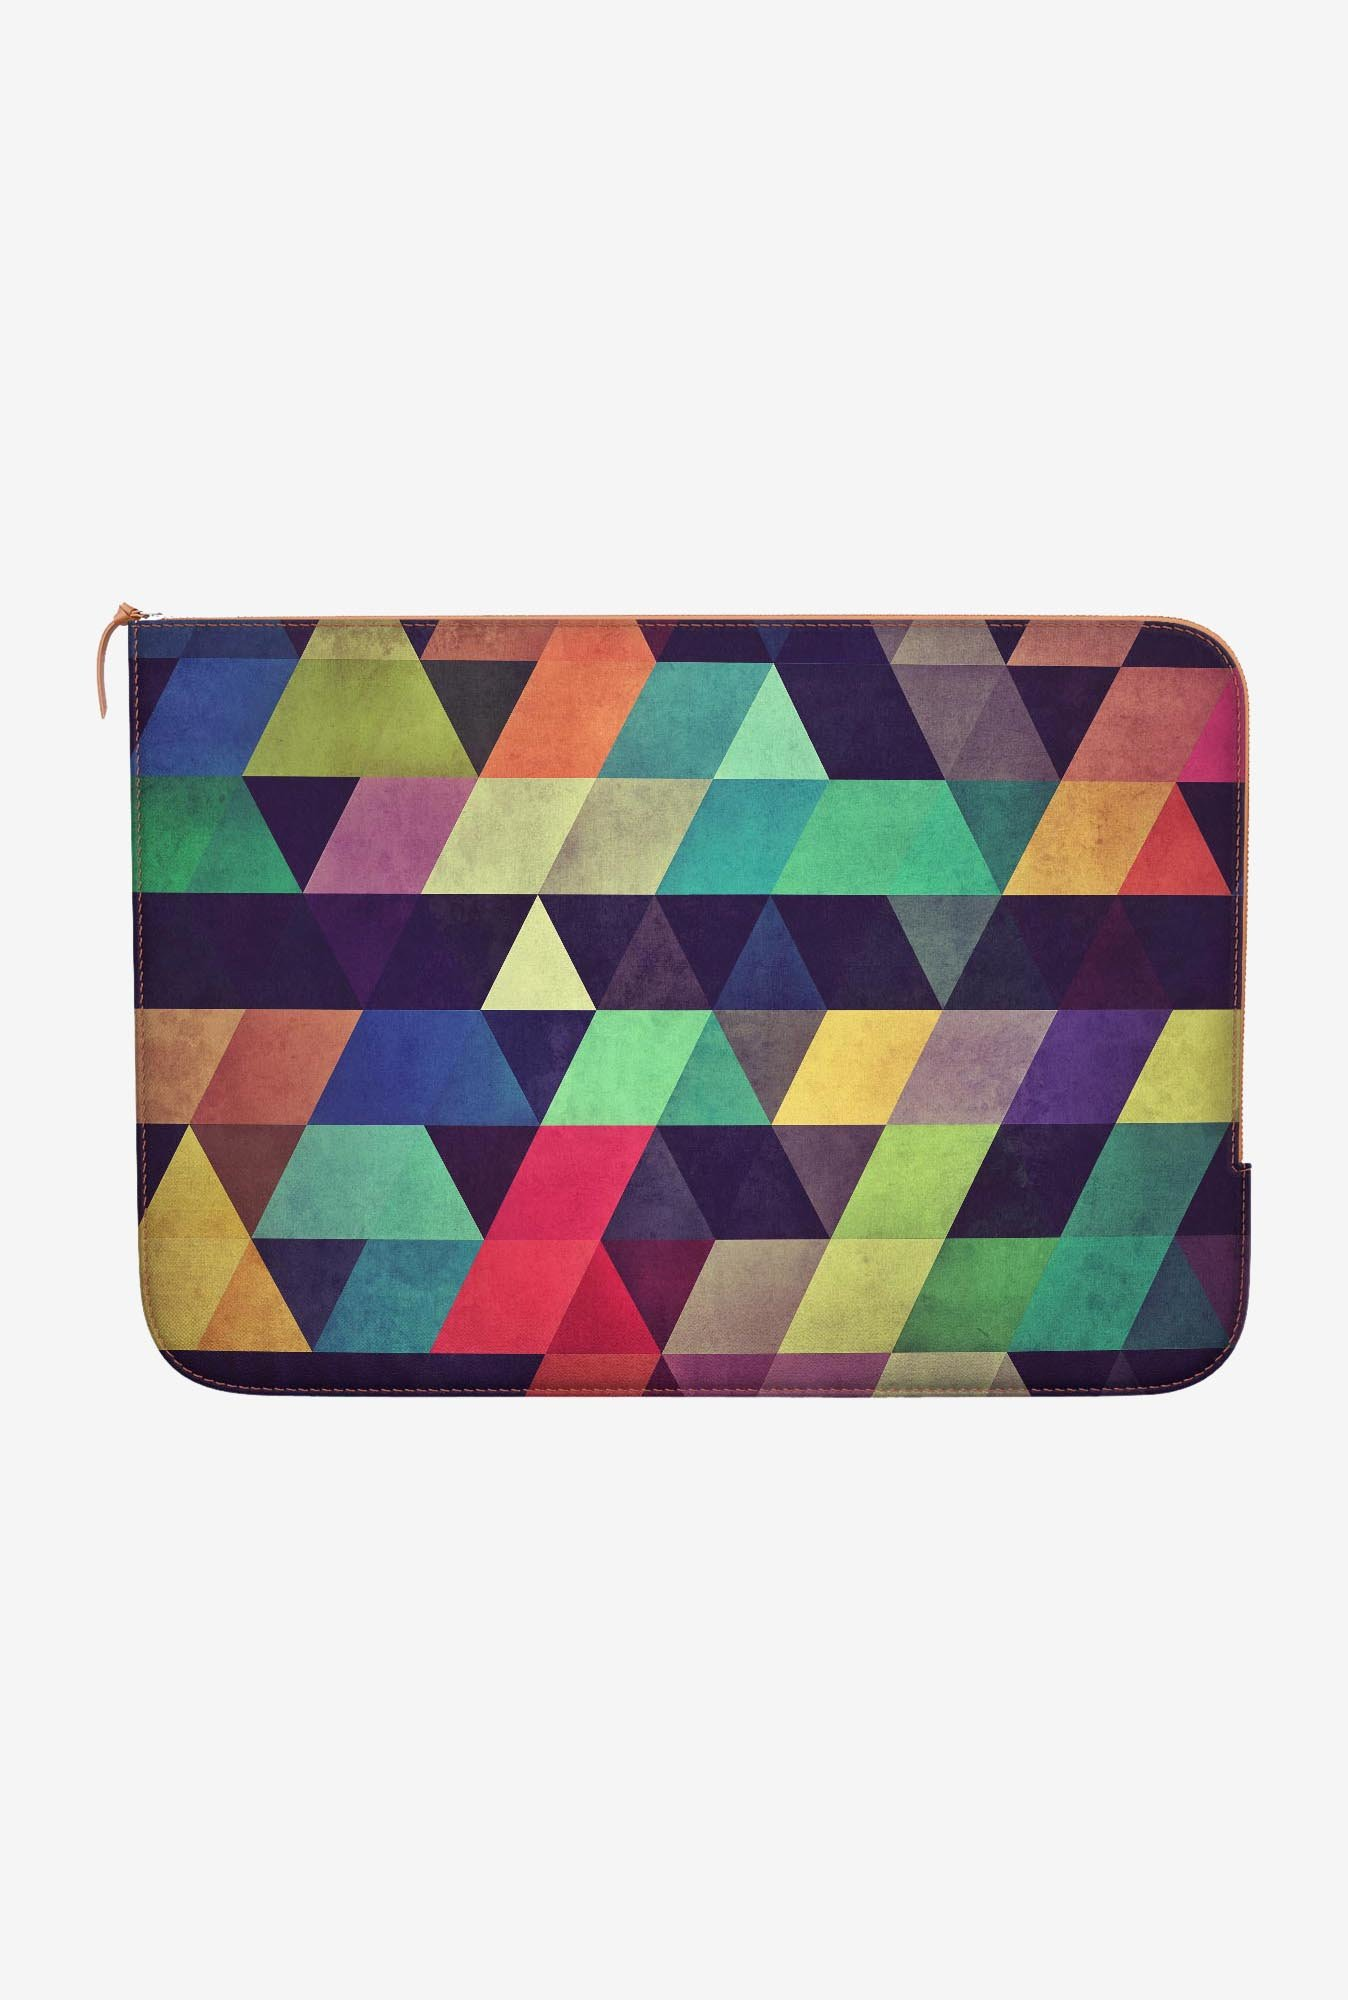 DailyObjects ztyrla MacBook Pro 13 Zippered Sleeve